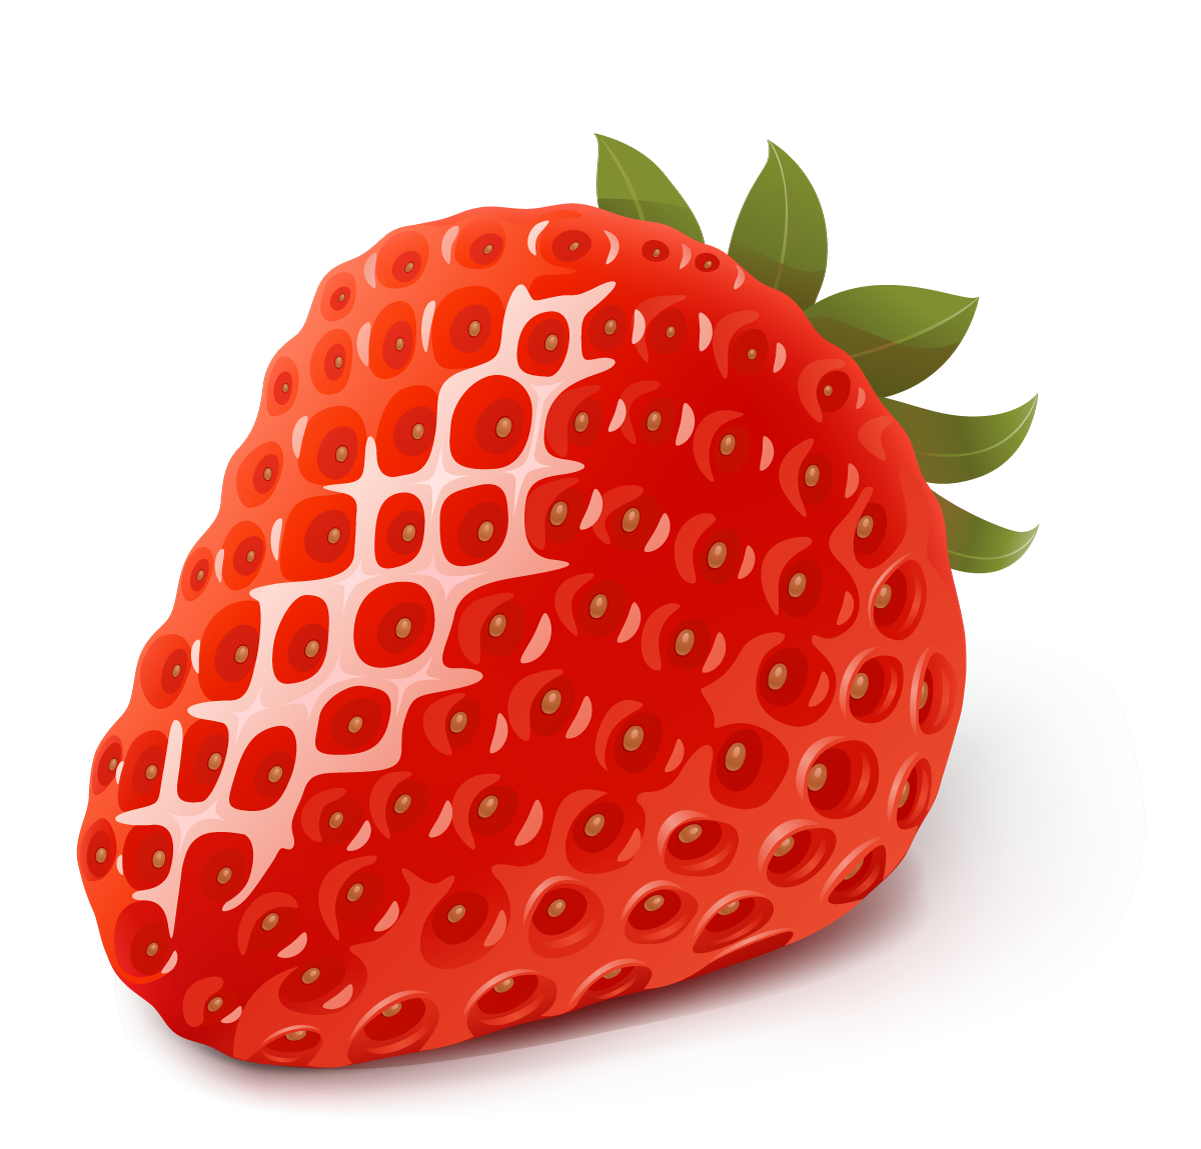 Strawberry PNG - 21050